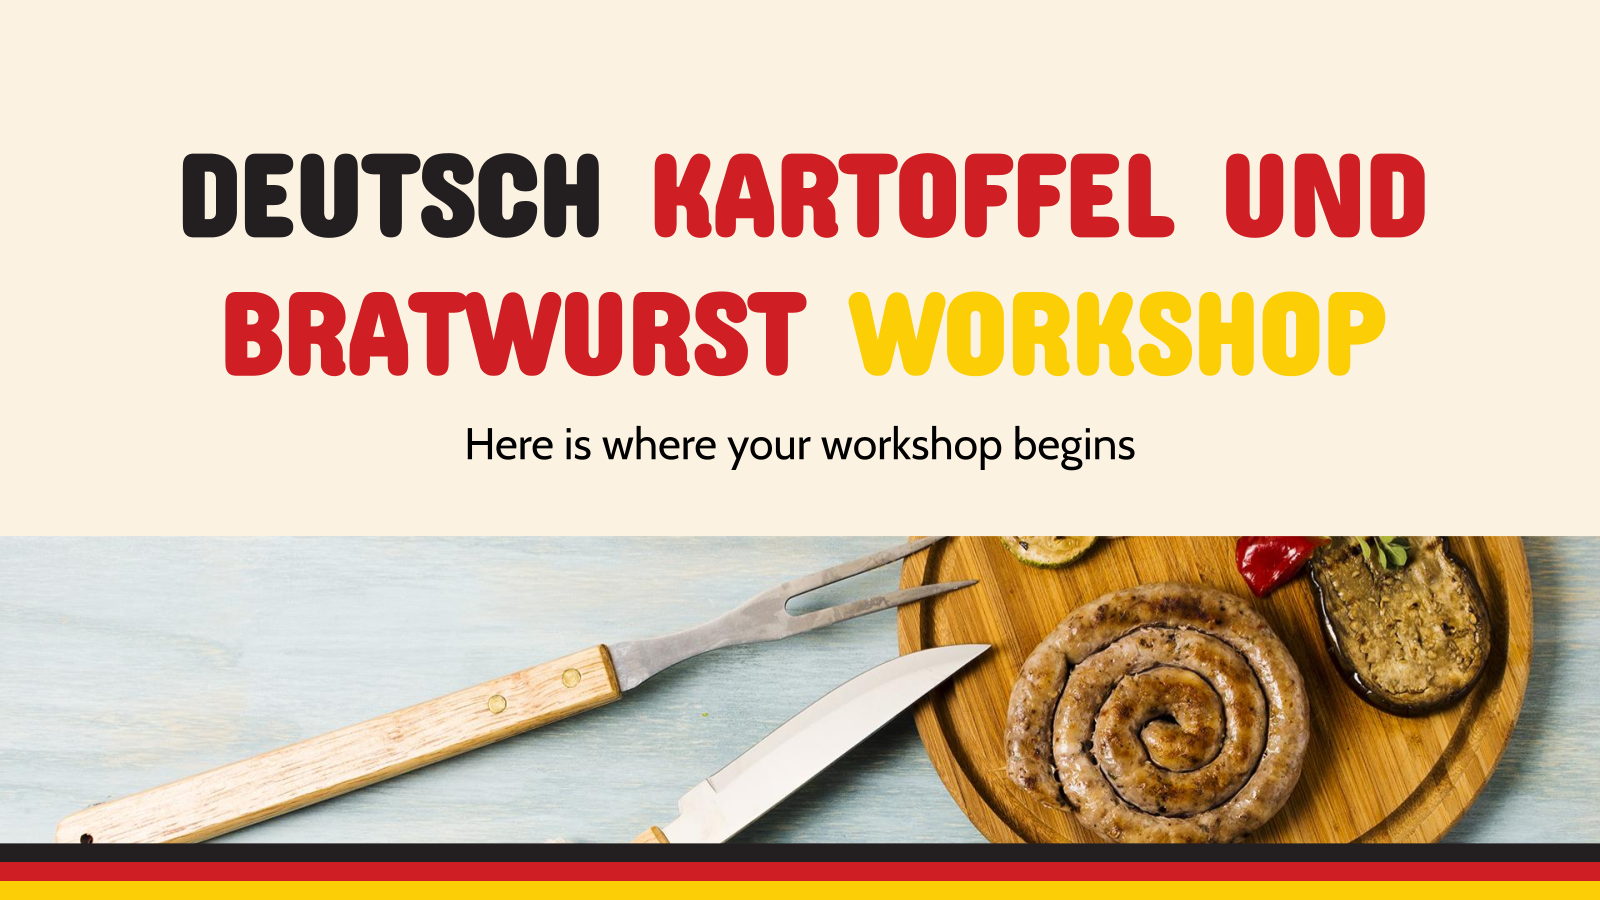 Deutsch Kartoffel und Bratwurst Workshop presentation template